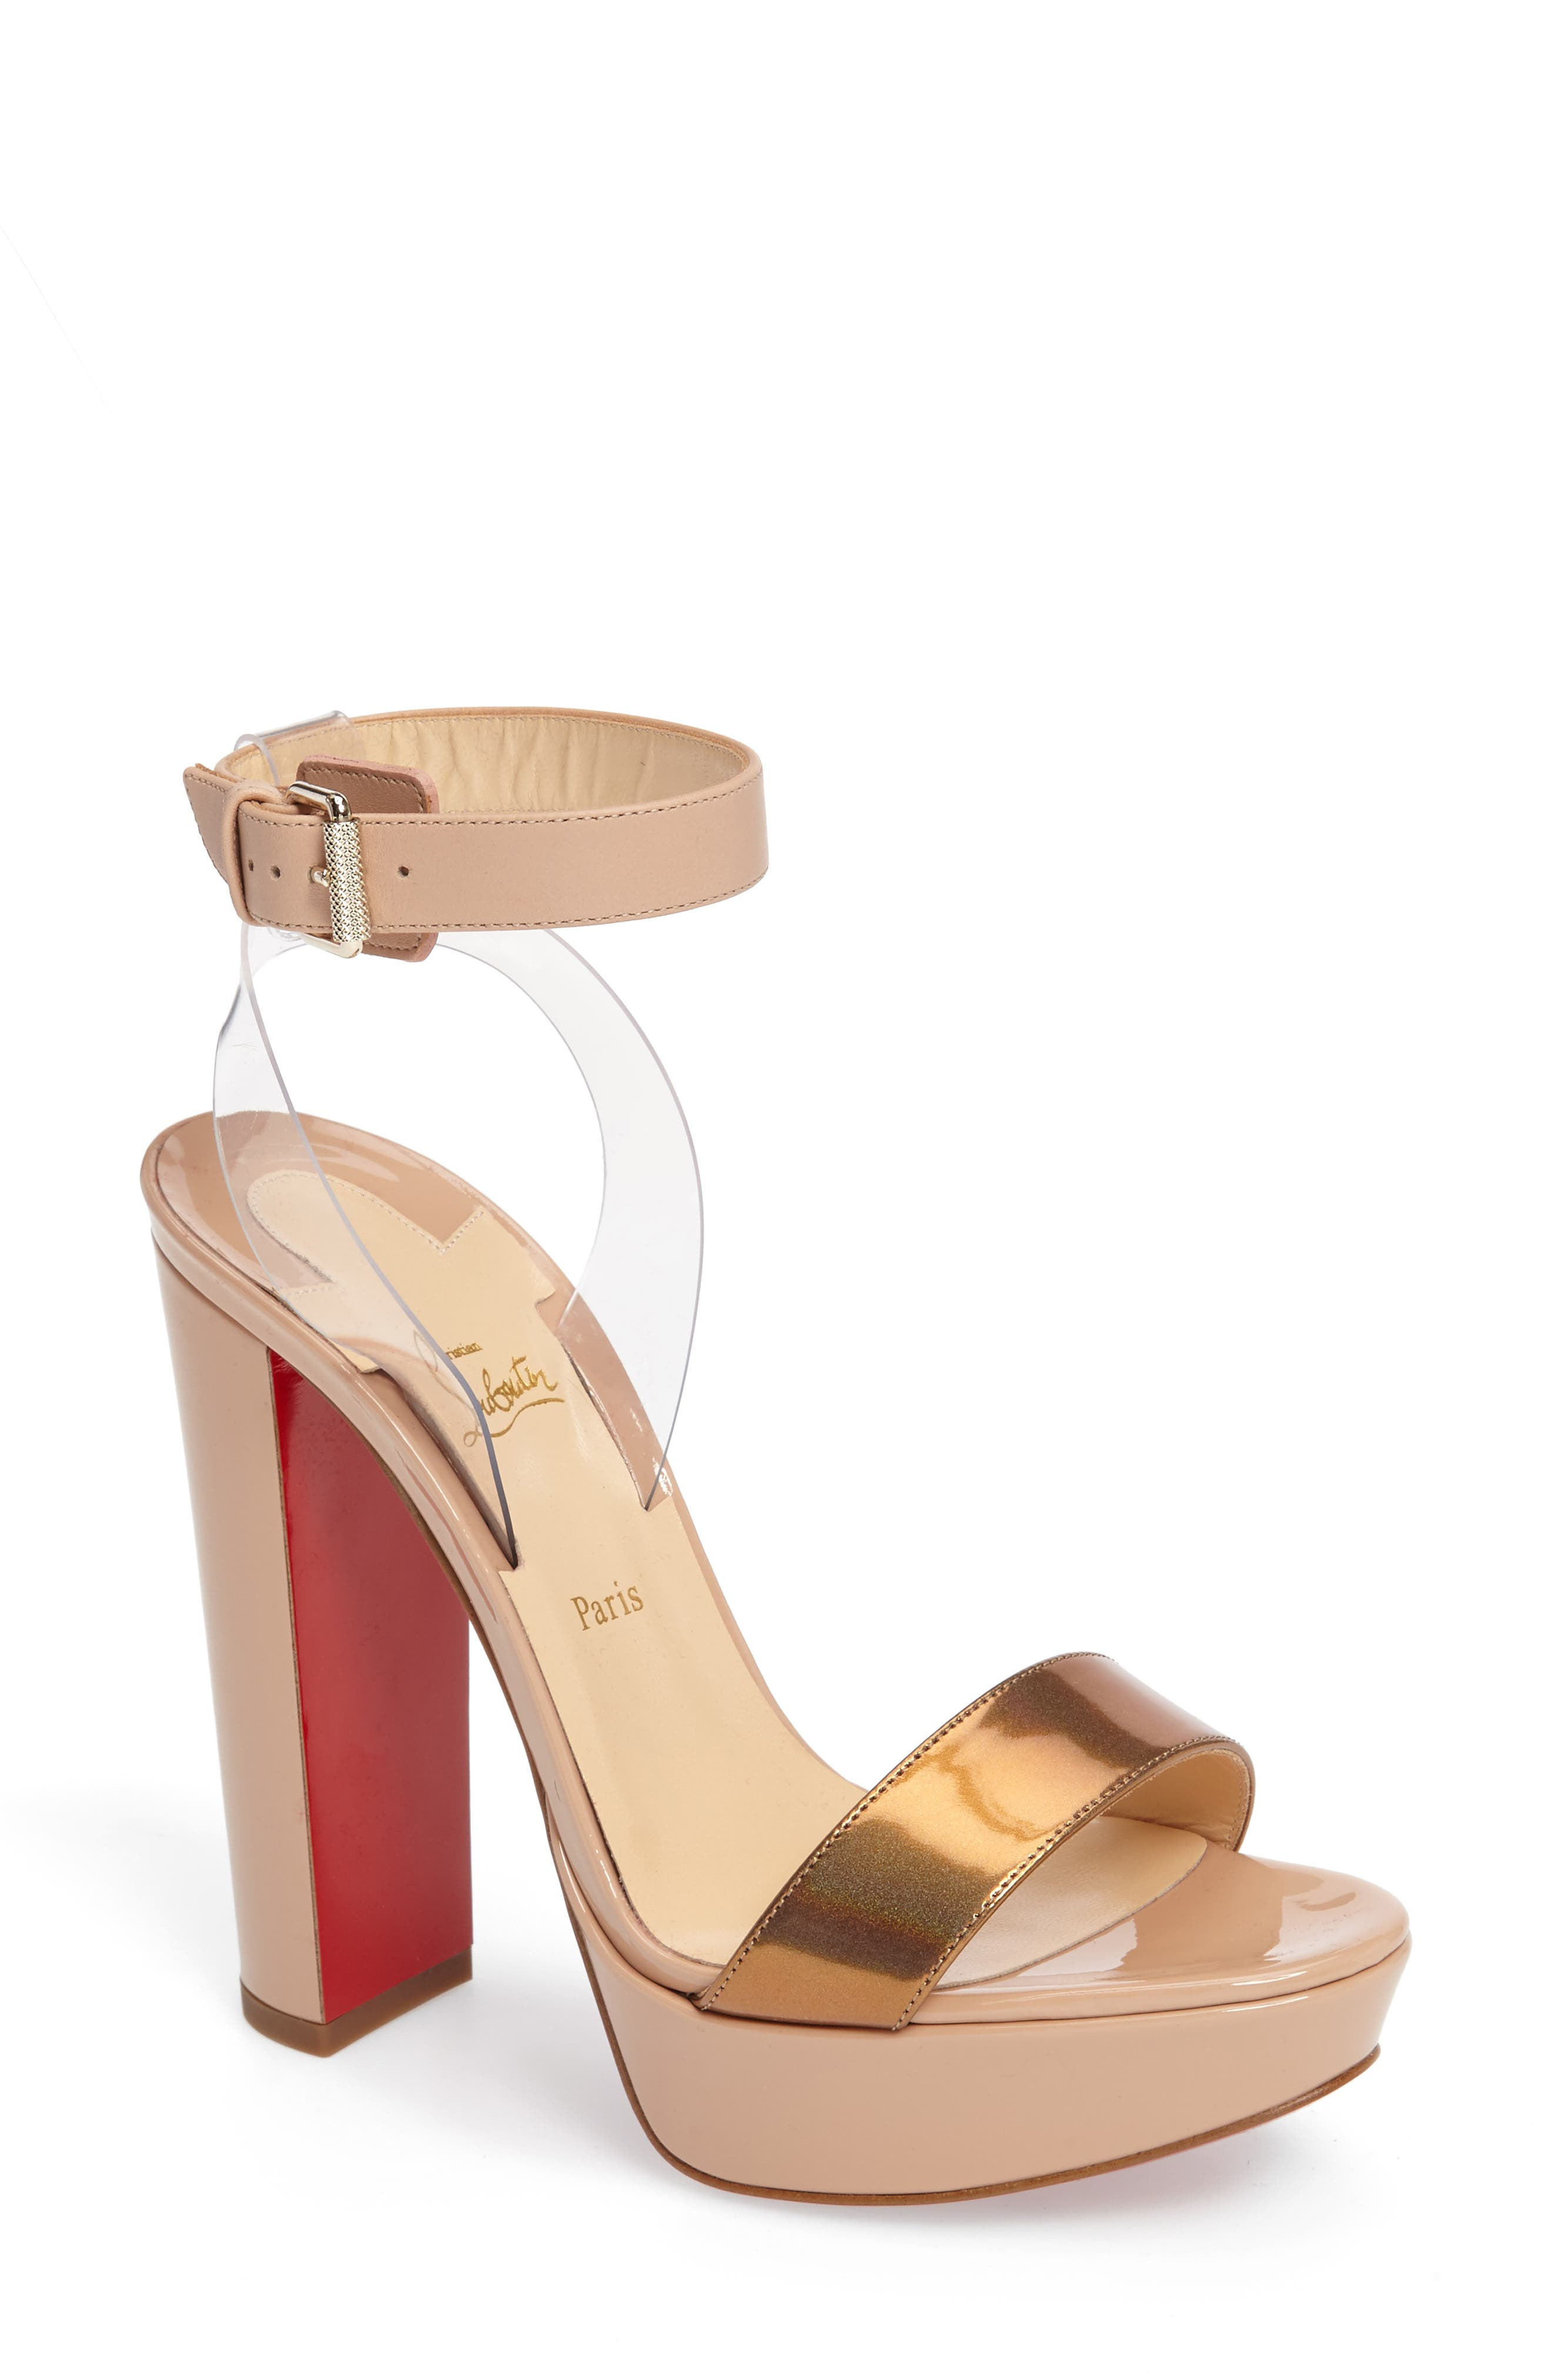 Main Image - Christian Louboutin Cherry Sandal (Women)